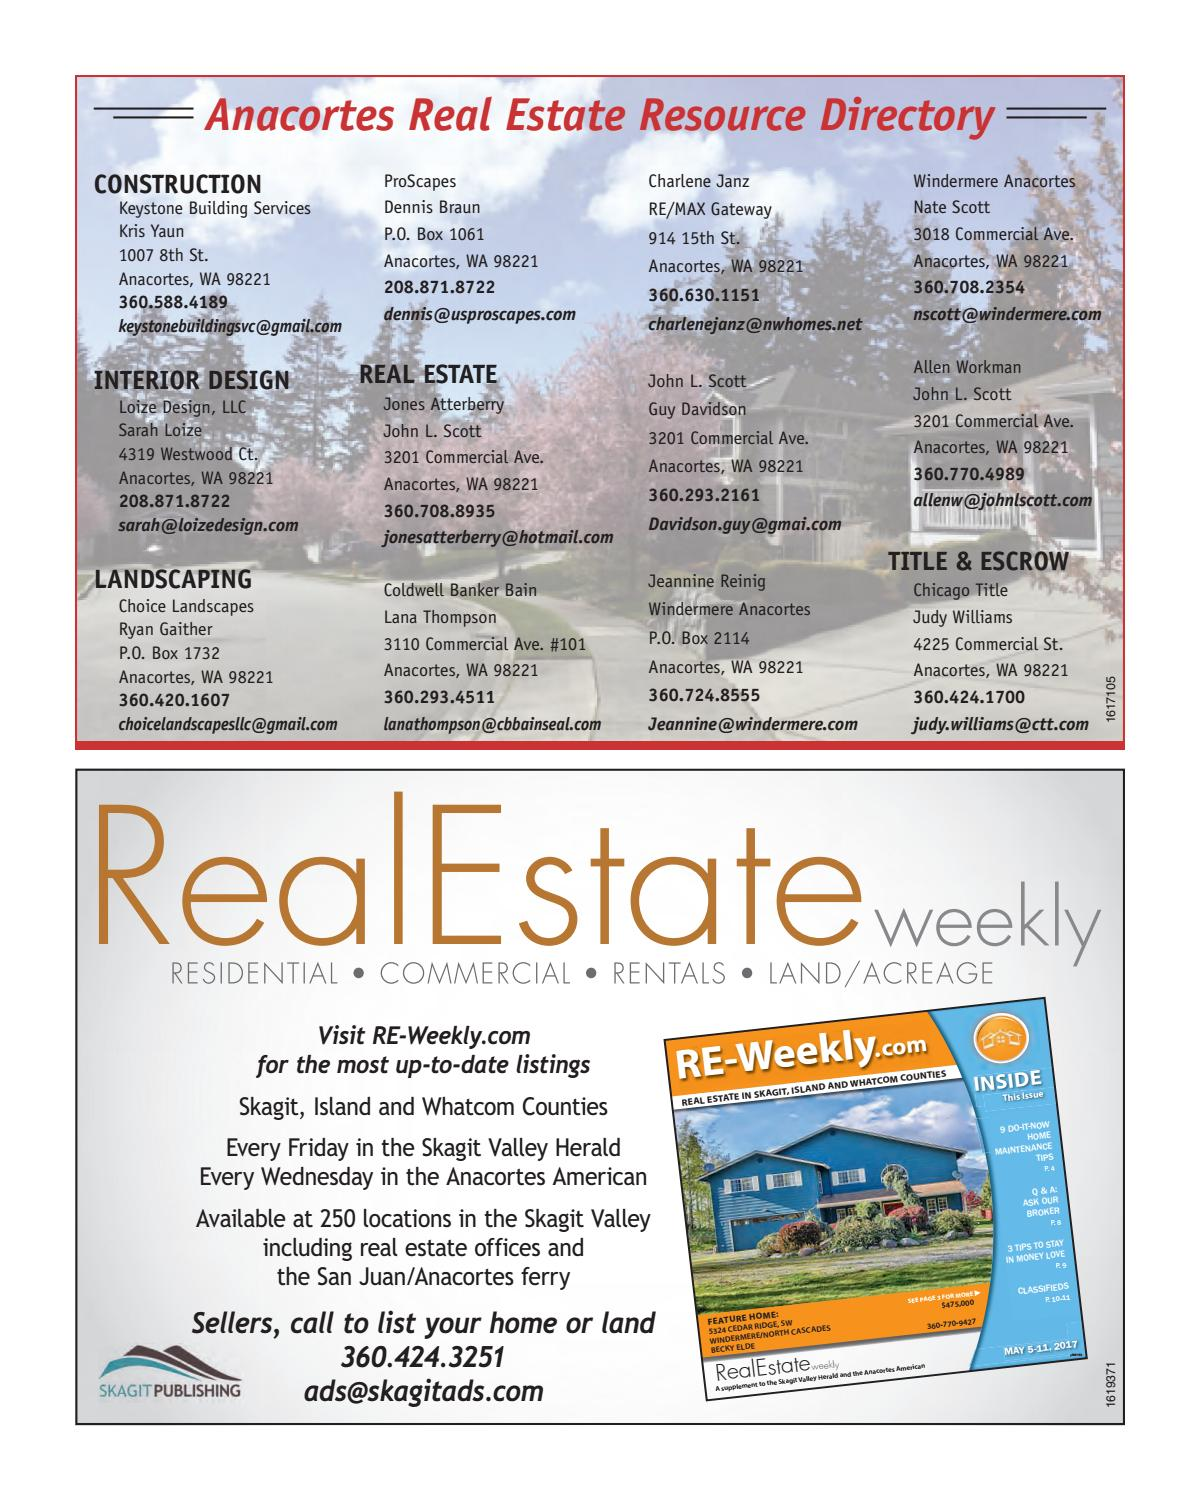 2017 ANACORTES REAL ESTATE ON THE MOVE by Skagit Publishing - Issuu